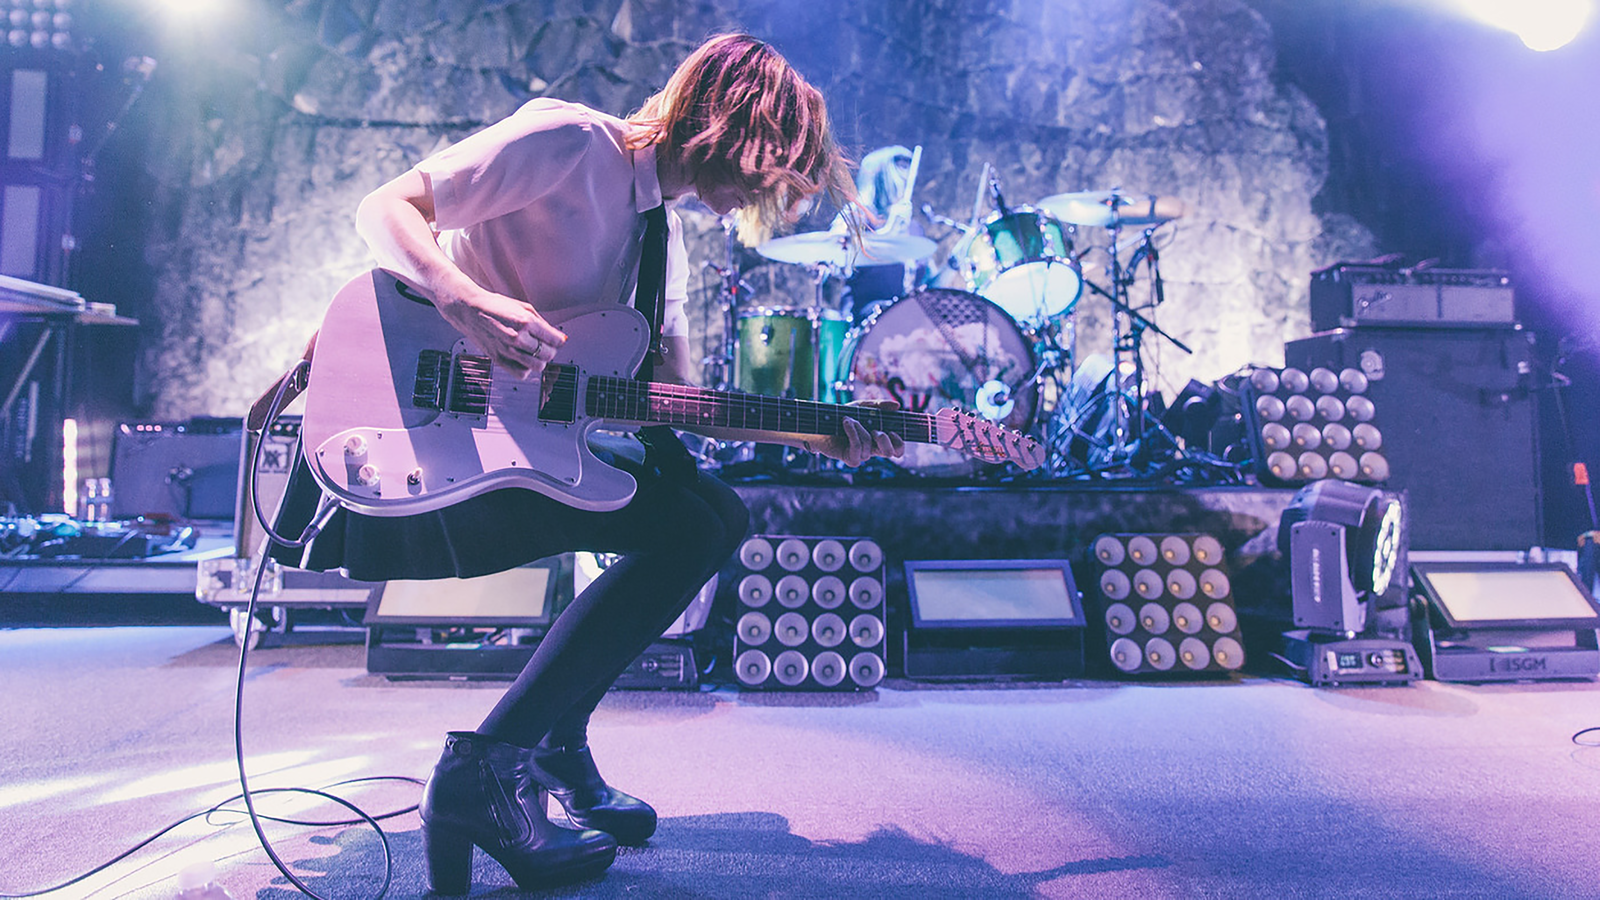 Carrie playing with Sleater-Kinney. (photo: Brigitte Sire)